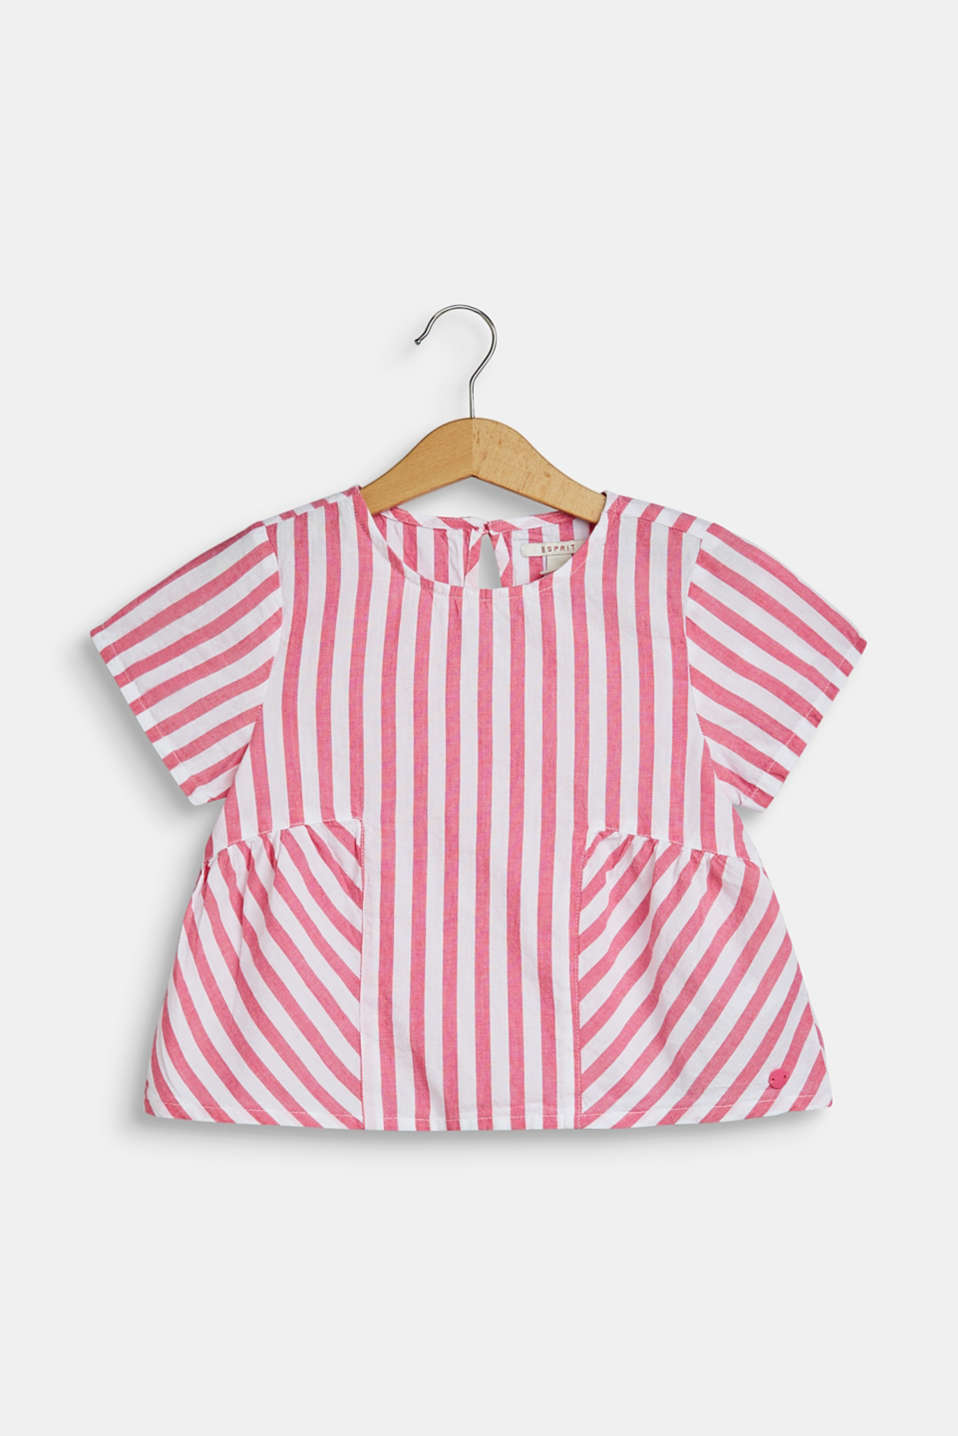 Esprit - Flared striped blouse, 100% cotton